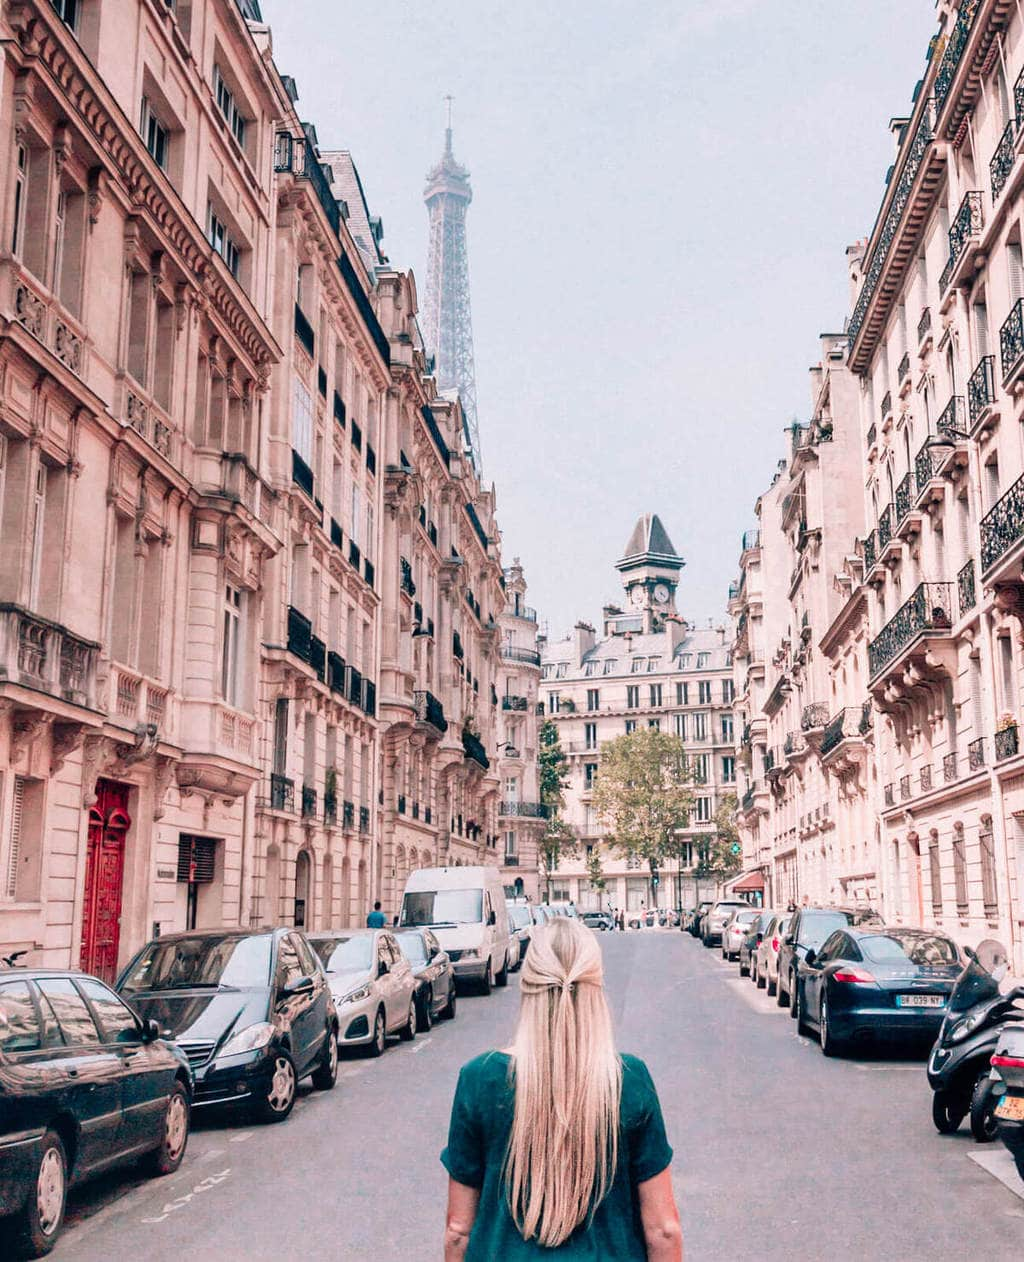 The Eiffel Tower peeking above a building in Paris. Find the best places to stay in Paris at New Year's here.